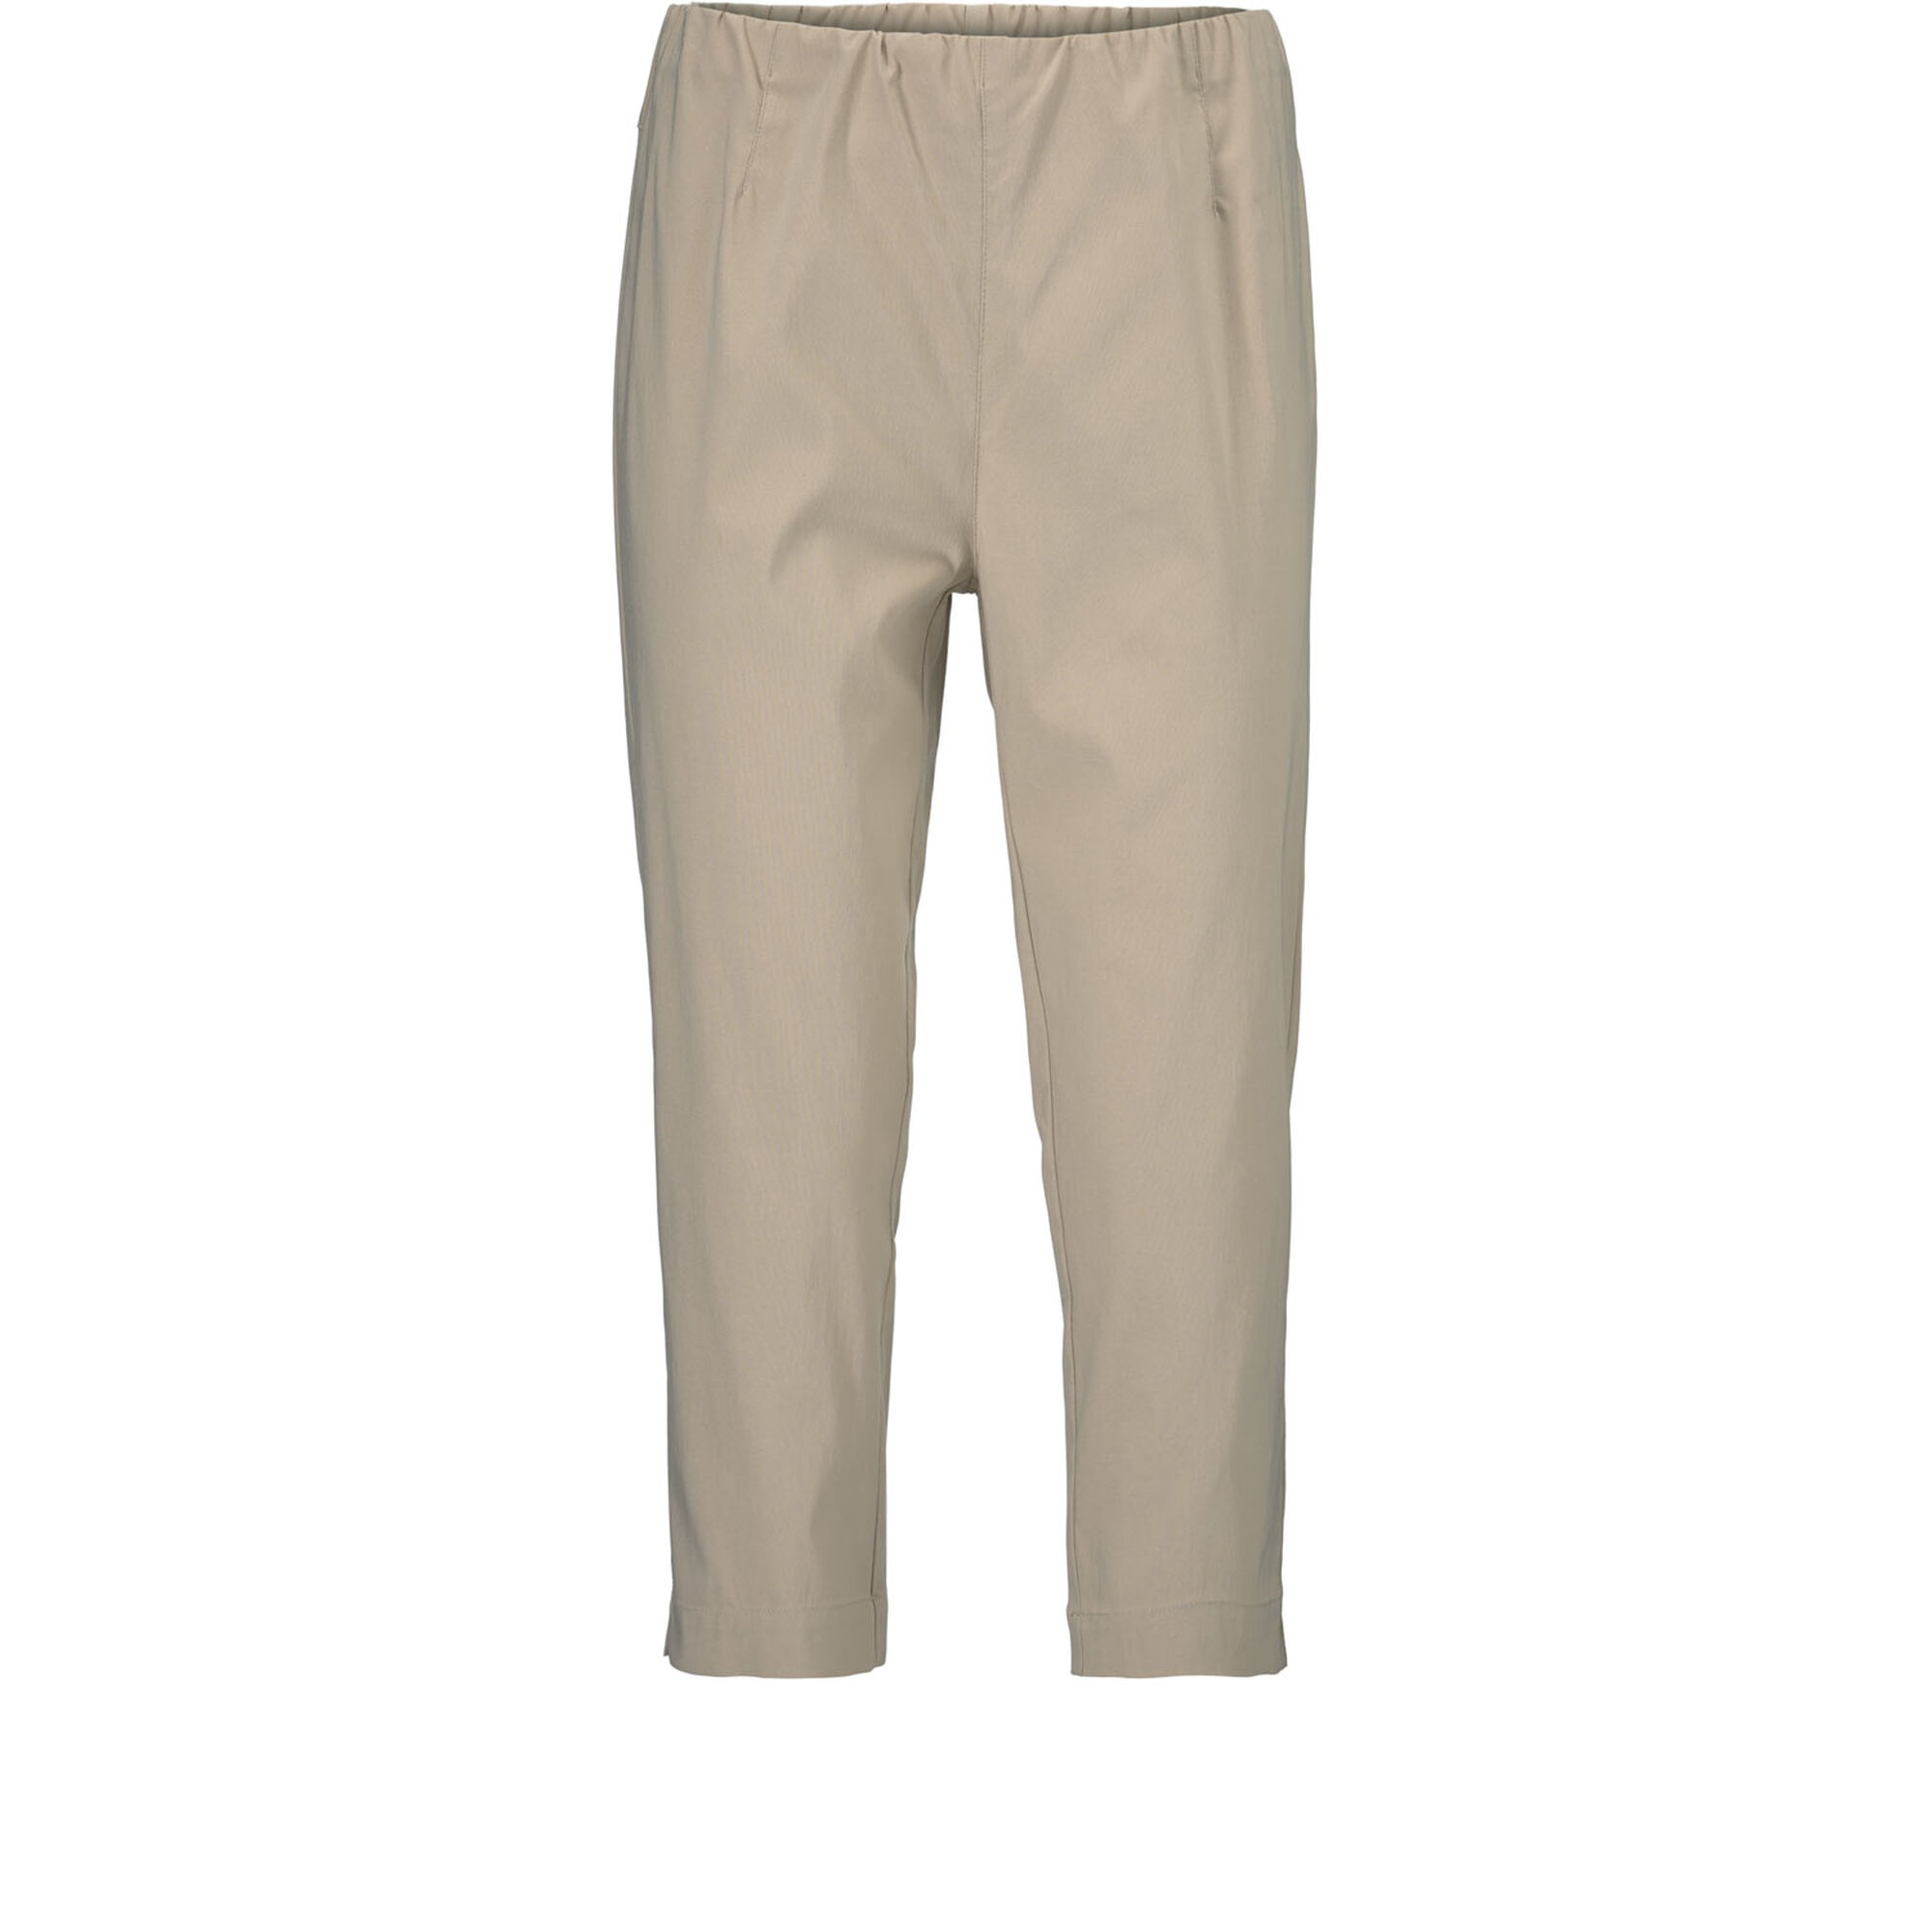 POPPY TROUSERS, Nomad, hi-res